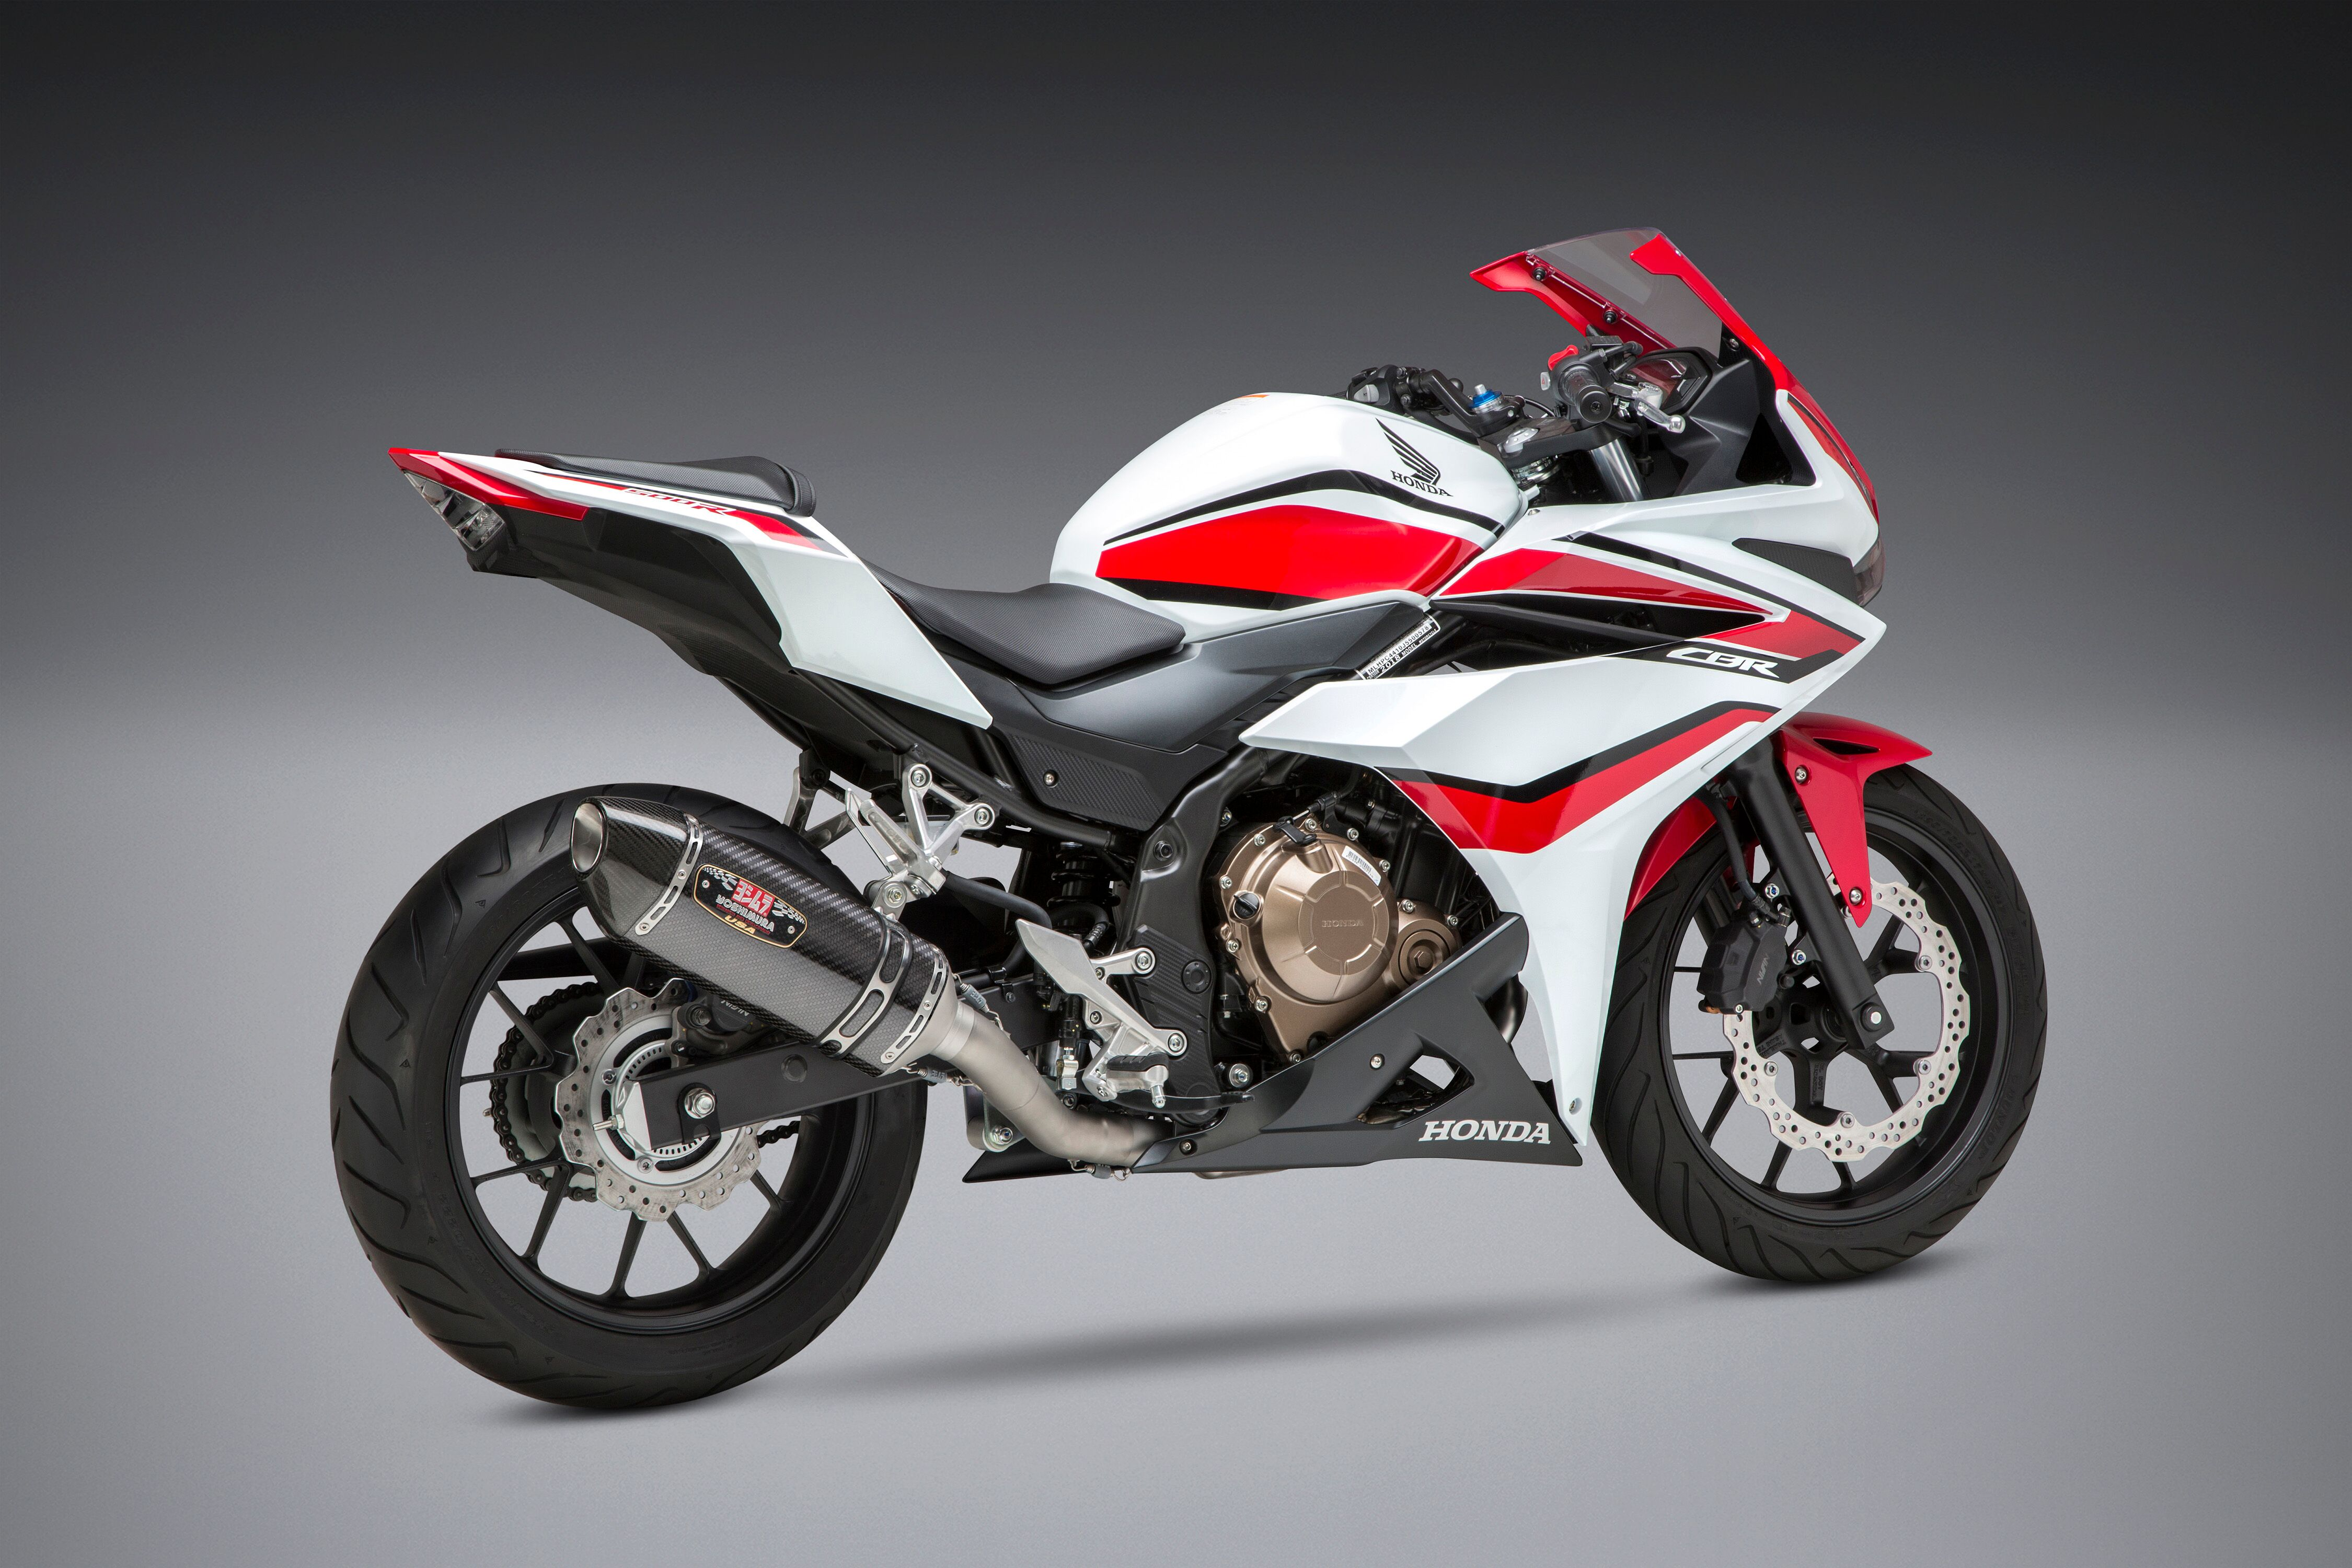 Yoshimura R-77 Race Series Exhaust System with Carbon Fiber Cannister for 2014-2018 Honda CBR500R